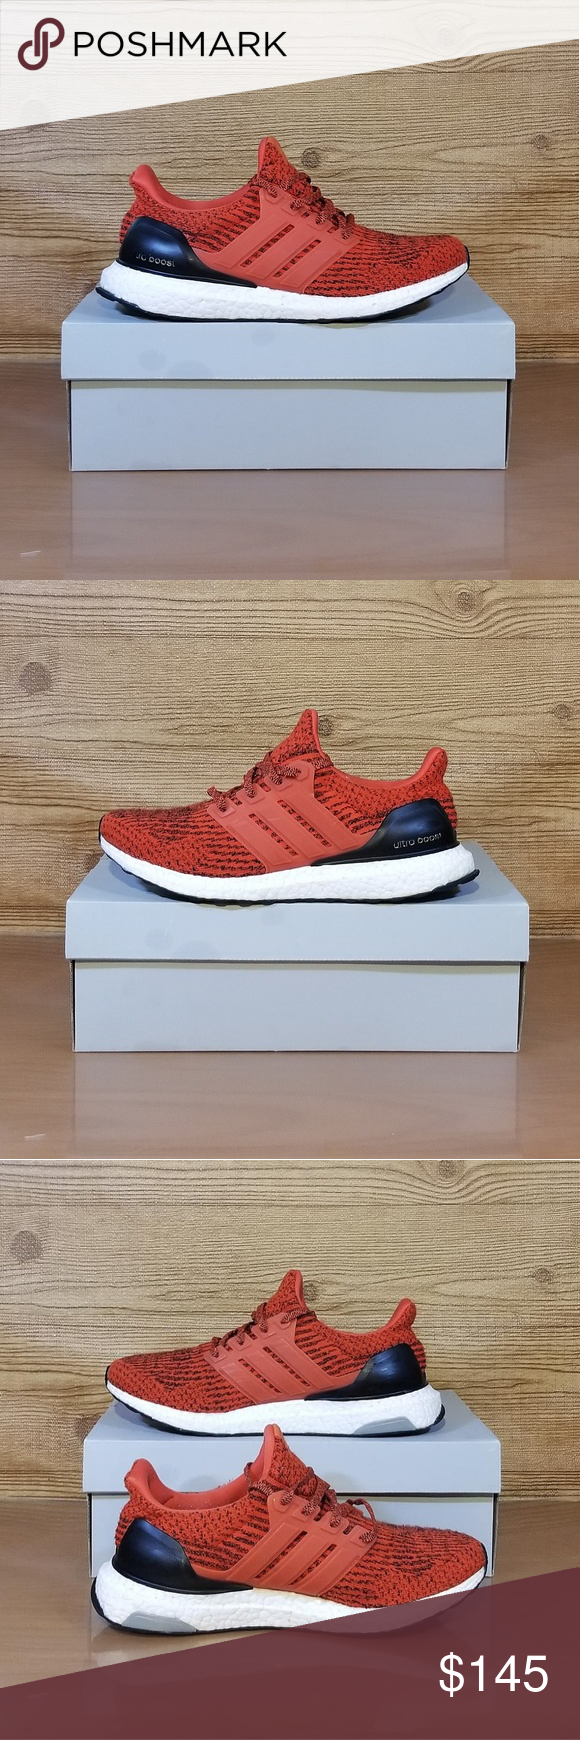 013aaea42f518 Adidas Ultra Boost 3.0 -Energy Red- Adidas Ultra Boost 3.0- S80635- Mens